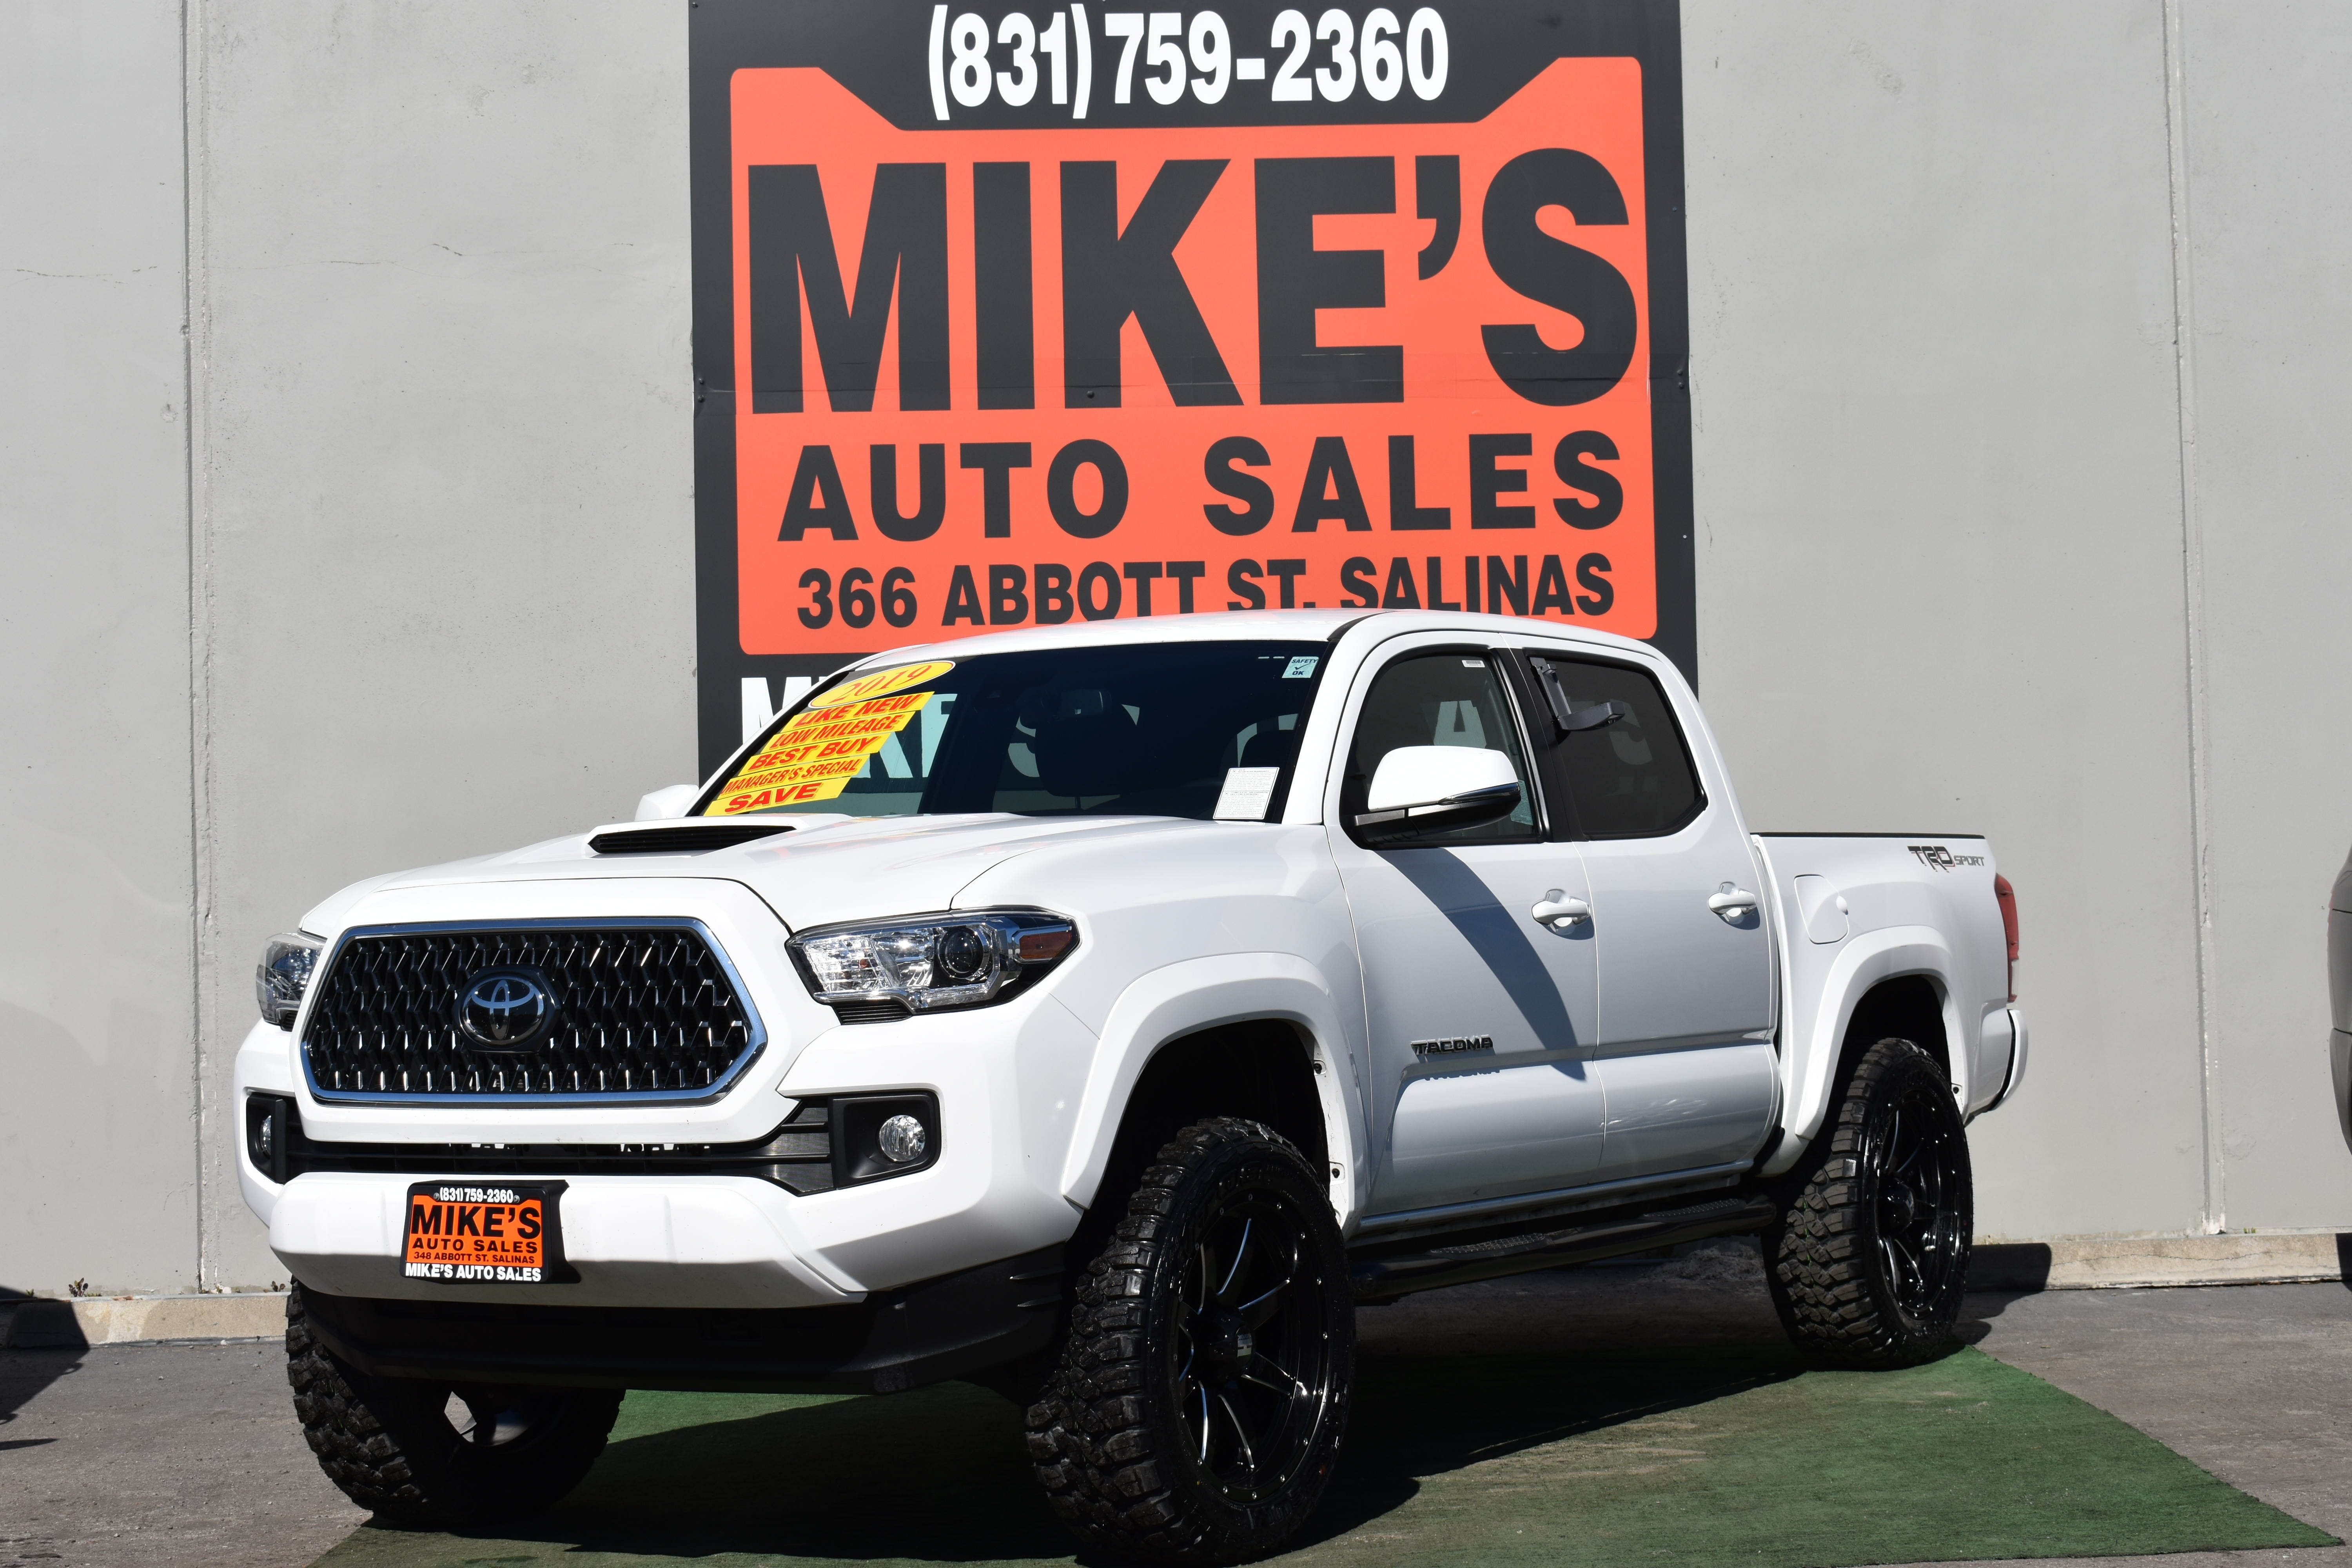 2019 Toyota Tacoma 2WD SR5 Double Cab 5 Bed V6 AT in Salinas, CA